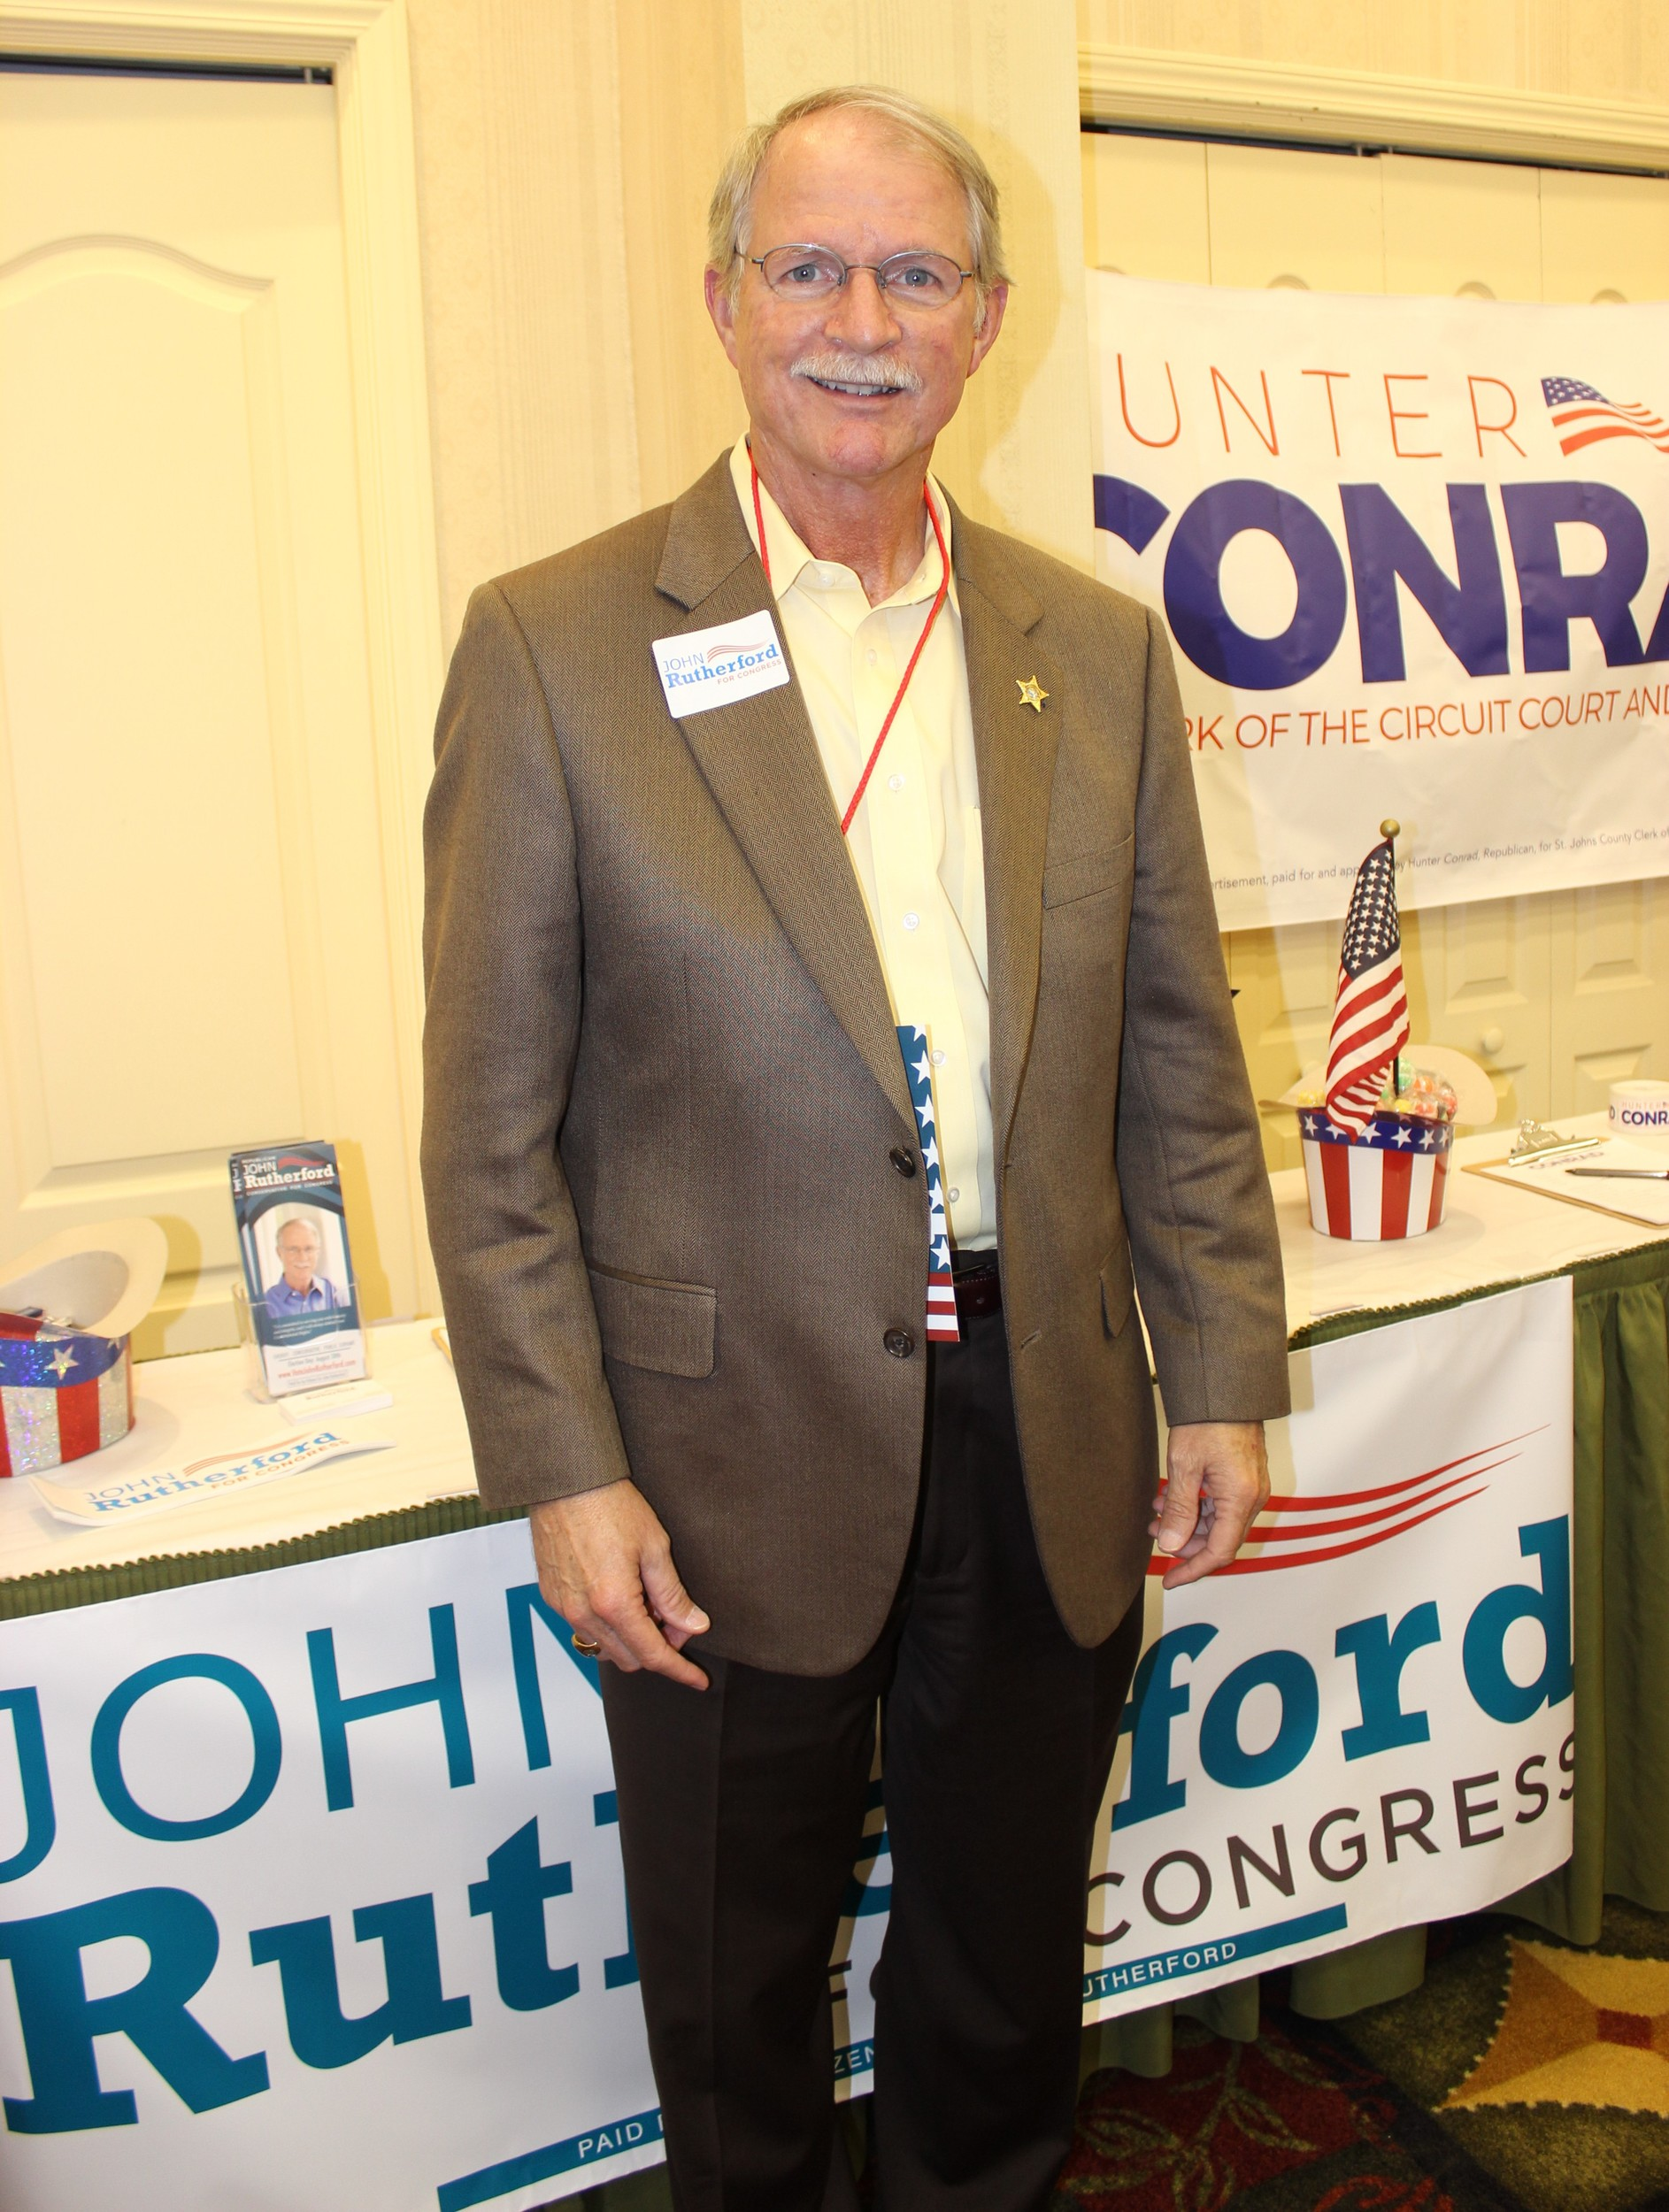 Former Jacksonville Sheriff and 4th Congressional District Candidate John Rutherford